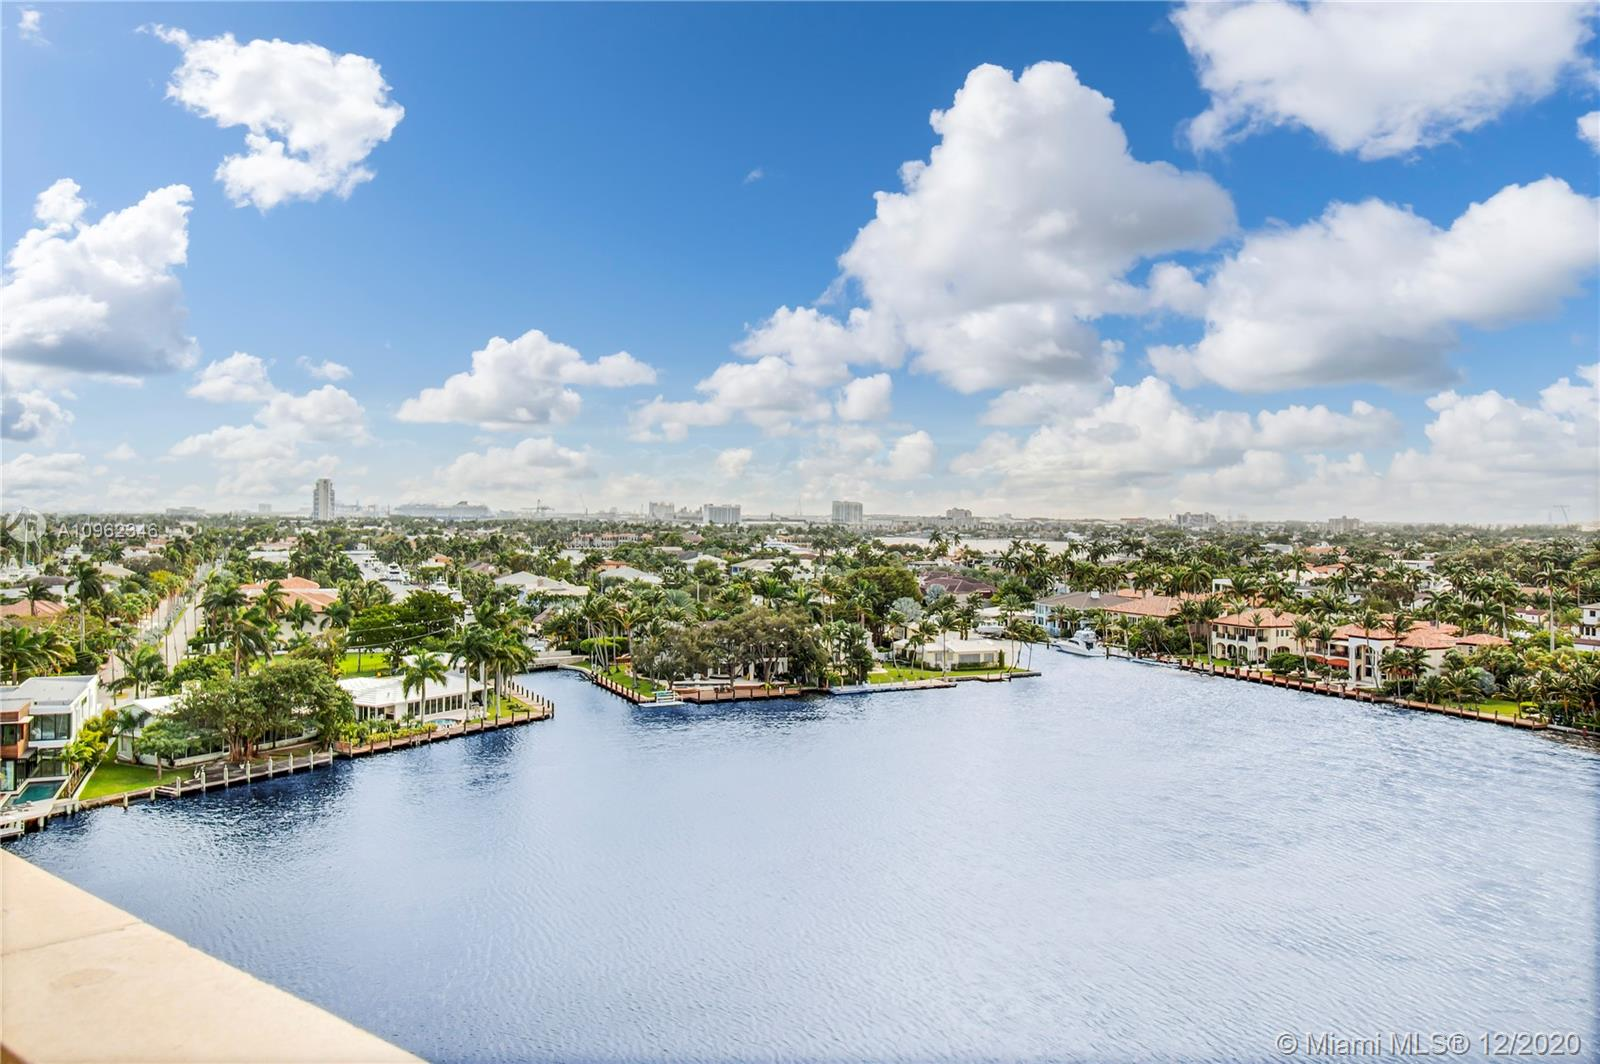 Massive 4 Bedroom 5 Bathroom condo overlooking Sunset Lake. This unit is a result of an assemblage of the adjacent unit, making this a one of a kind unit. The unit features 9' ceilings, split bedroom plan, large outdoor terrace. Amenities at the Four Seasons include heated pool, 24 hour security, BBQ, kayak & paddle board launching area and boat dockage is available at $10 per foot. There's direct ocean access with no fixed bridges, walking distance to Las Olas. Please reach out to the condo association to verify all rules and regulations. All offers should be directed to Auction. Please see Broker Remarks for access to the unit.